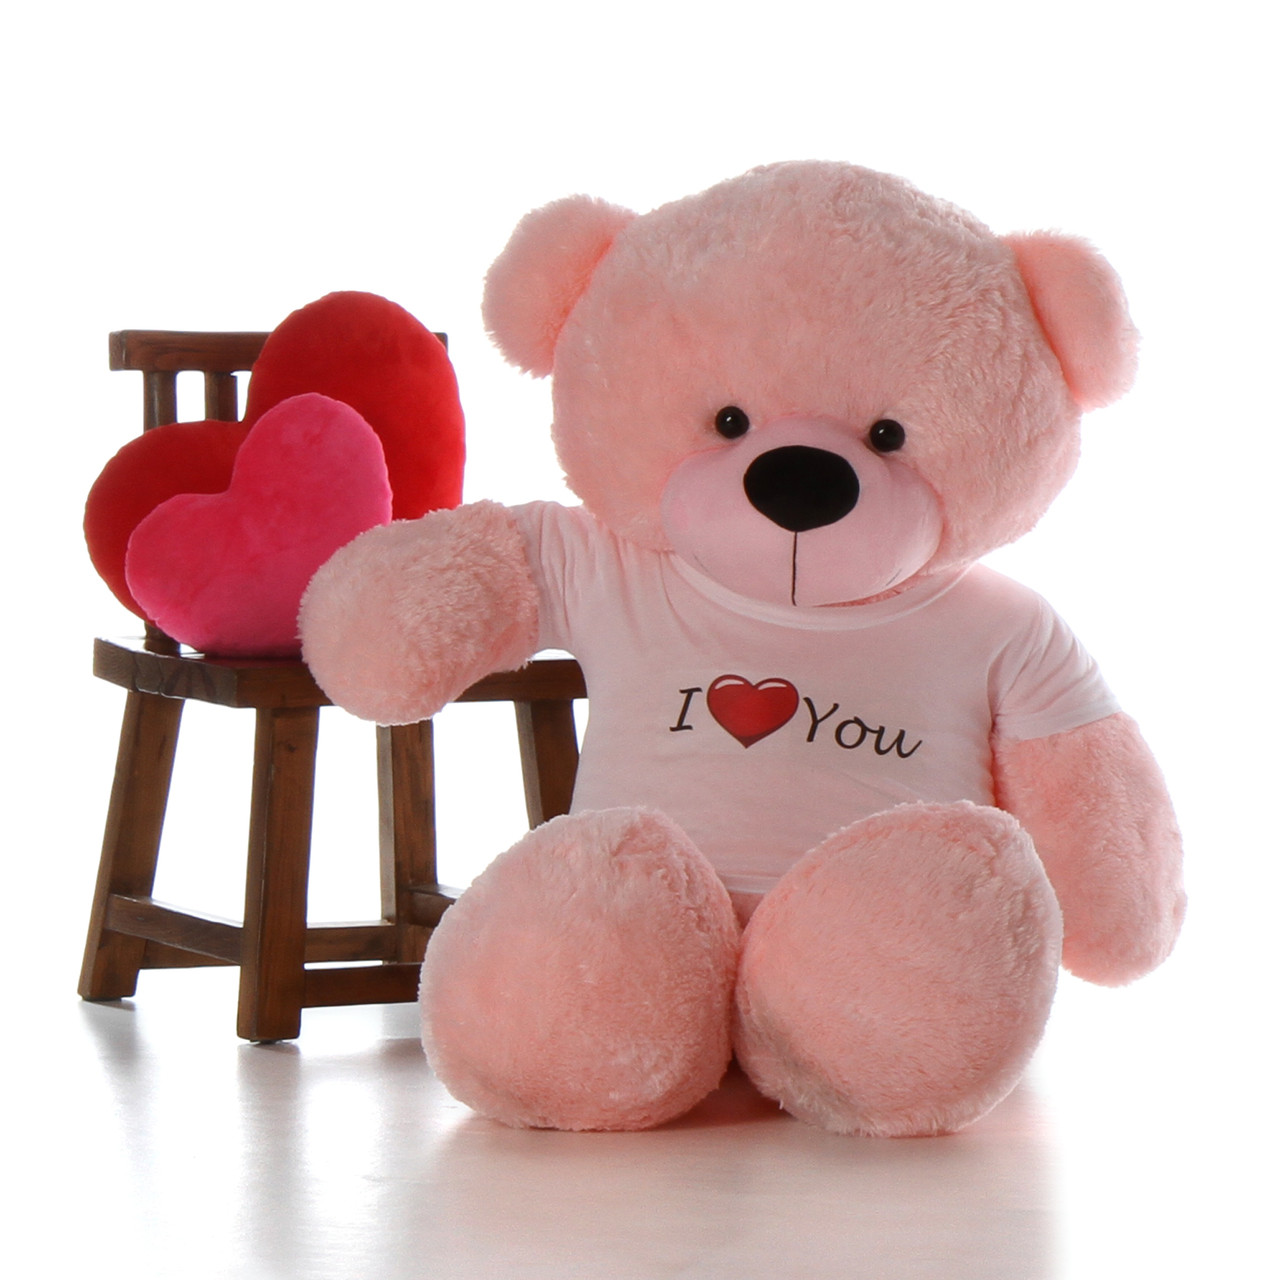 5ft life size giant teddy for valentines day pink lady cuddles with i love you shirt - Giant Teddy Bear For Valentines Day